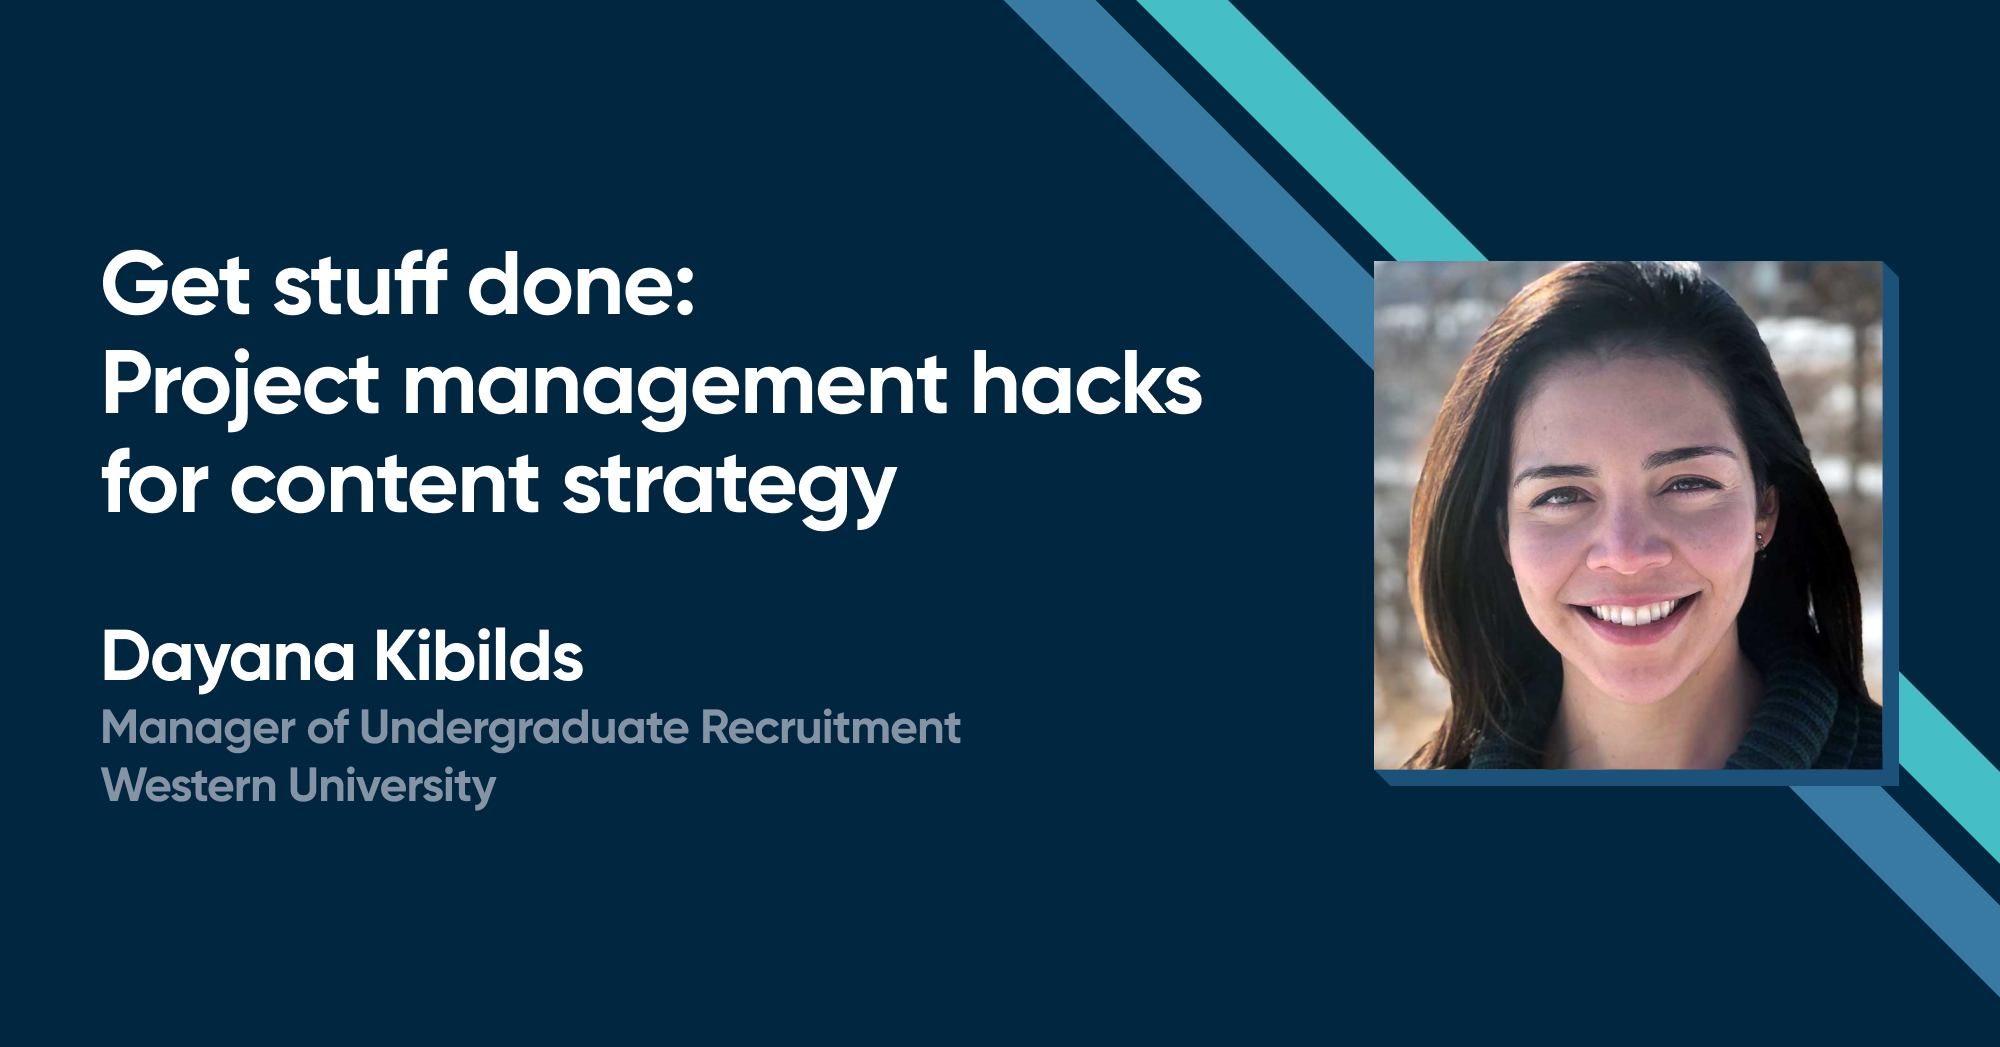 Dayana Kibilds - Get stuff done: Project management hacks for content strategy